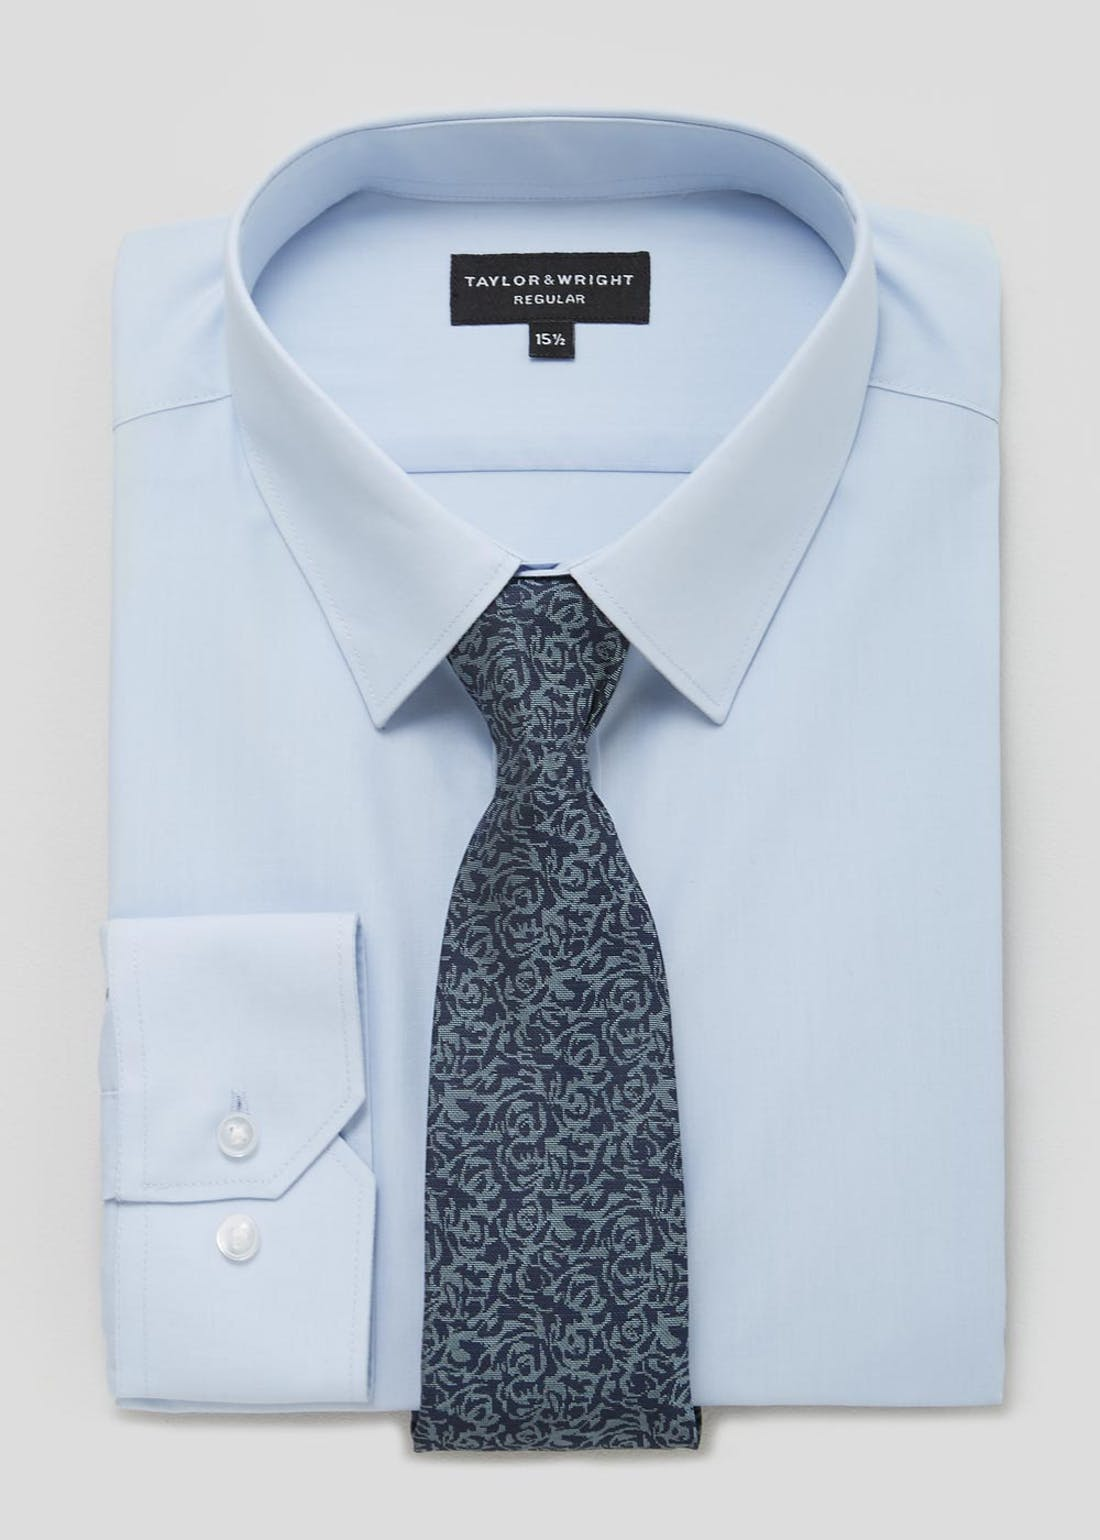 Taylor & Wright Regular Fit Long Sleeve Shirt & Tie Set